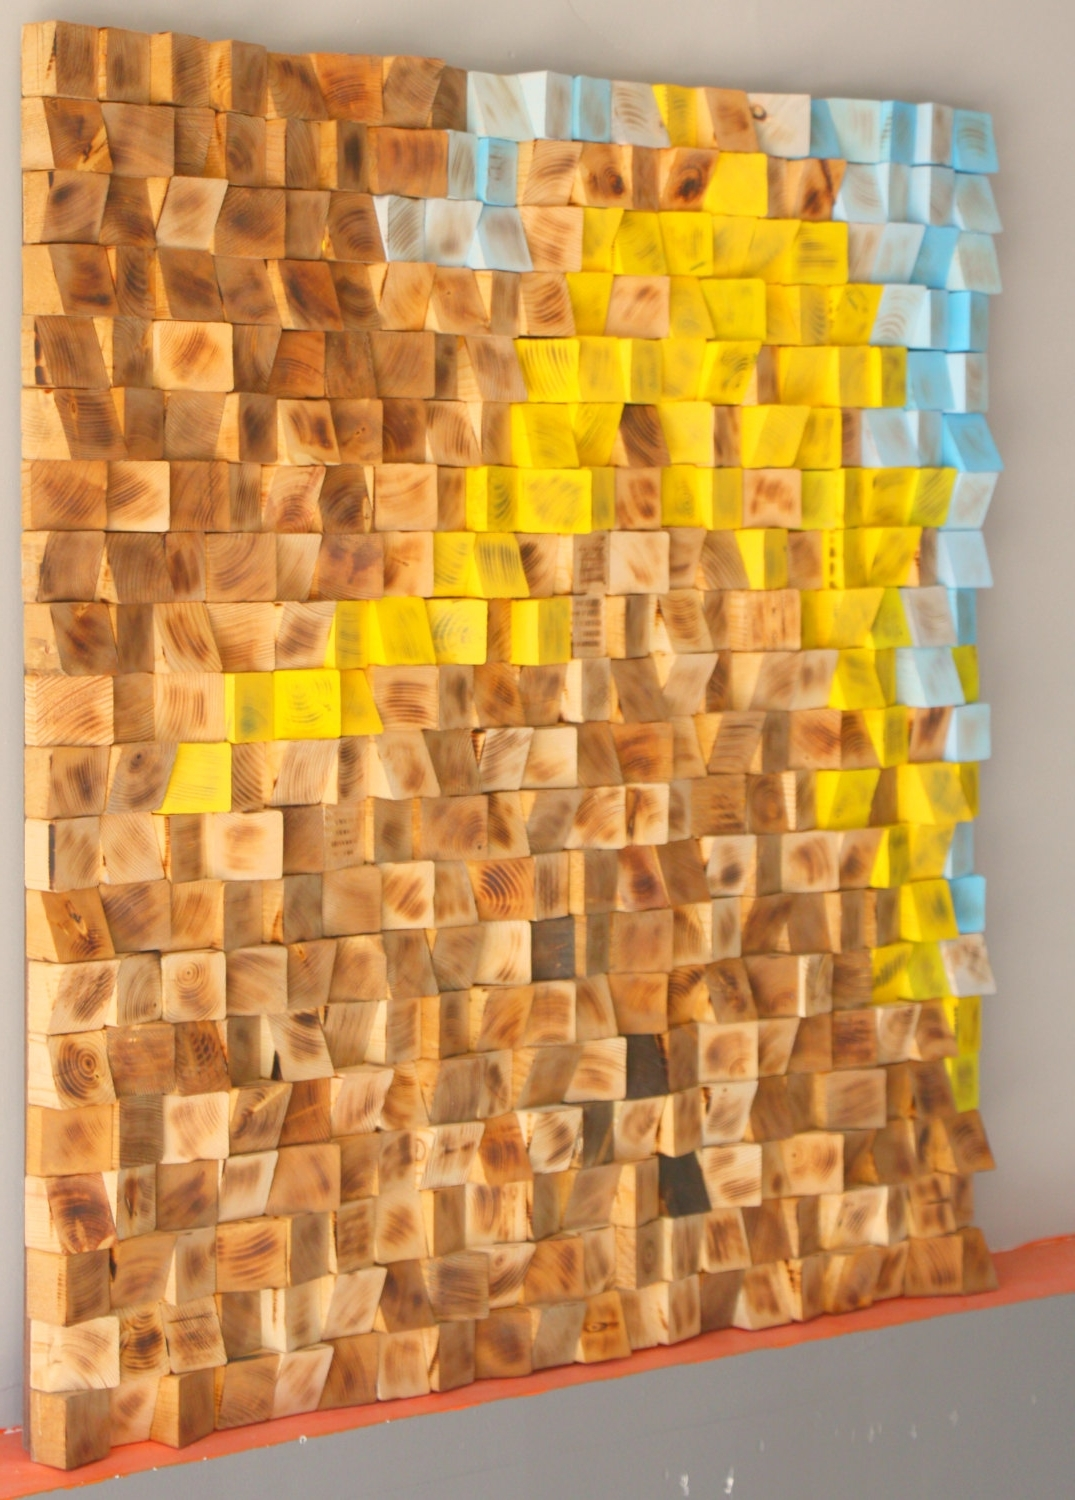 3d Wall Art Etsy Inside Popular Reclaimed Wood Wall Art, Wood Mosaic, Geometric Art, Wood Wall Art (View 6 of 15)